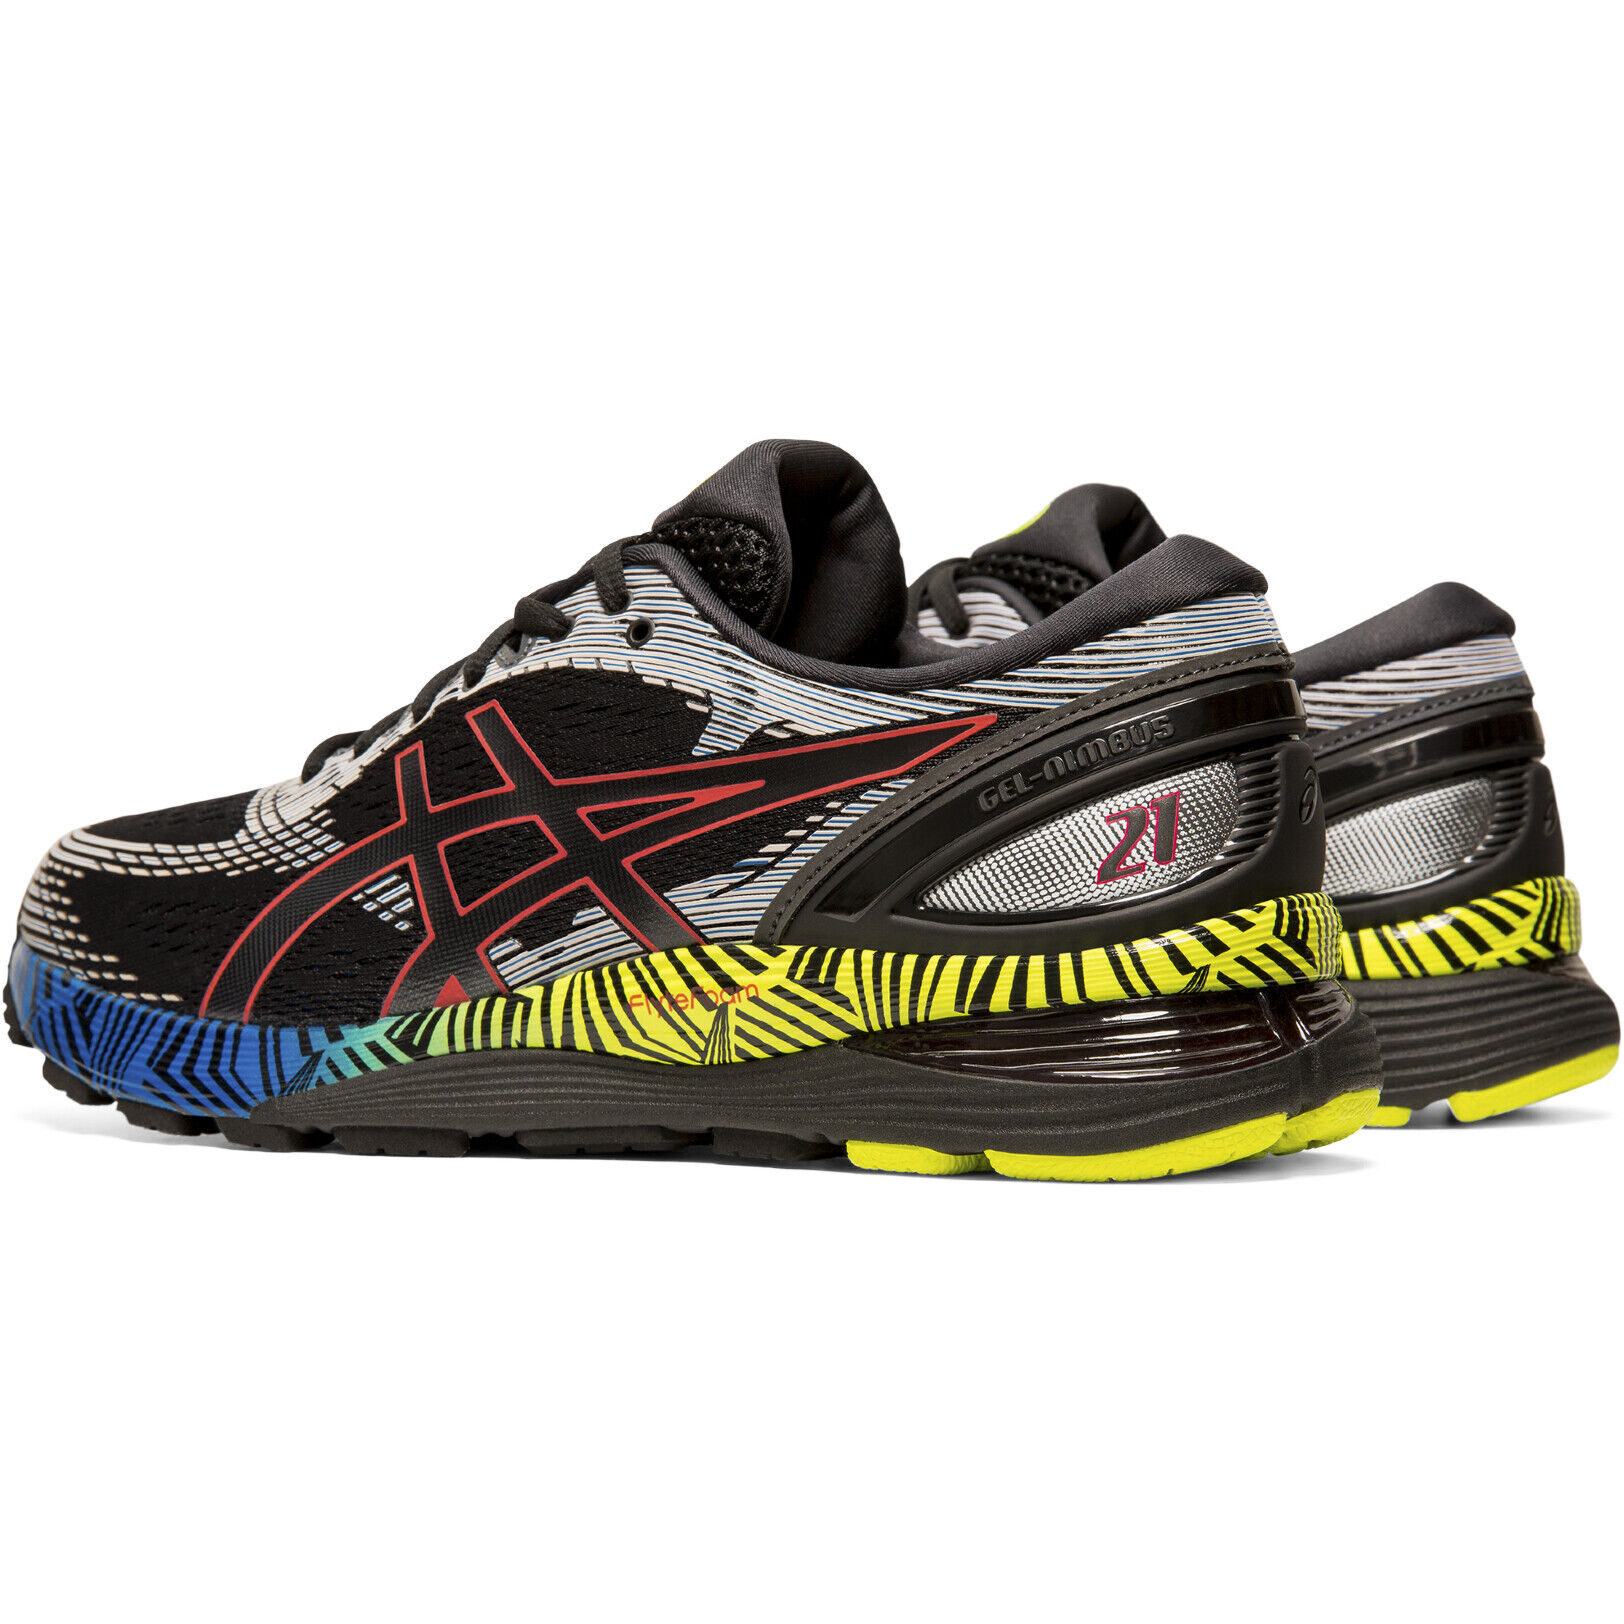 Asics Gel Nimbus 21 (1011A169) Illusion BlueBlack ab 103,59